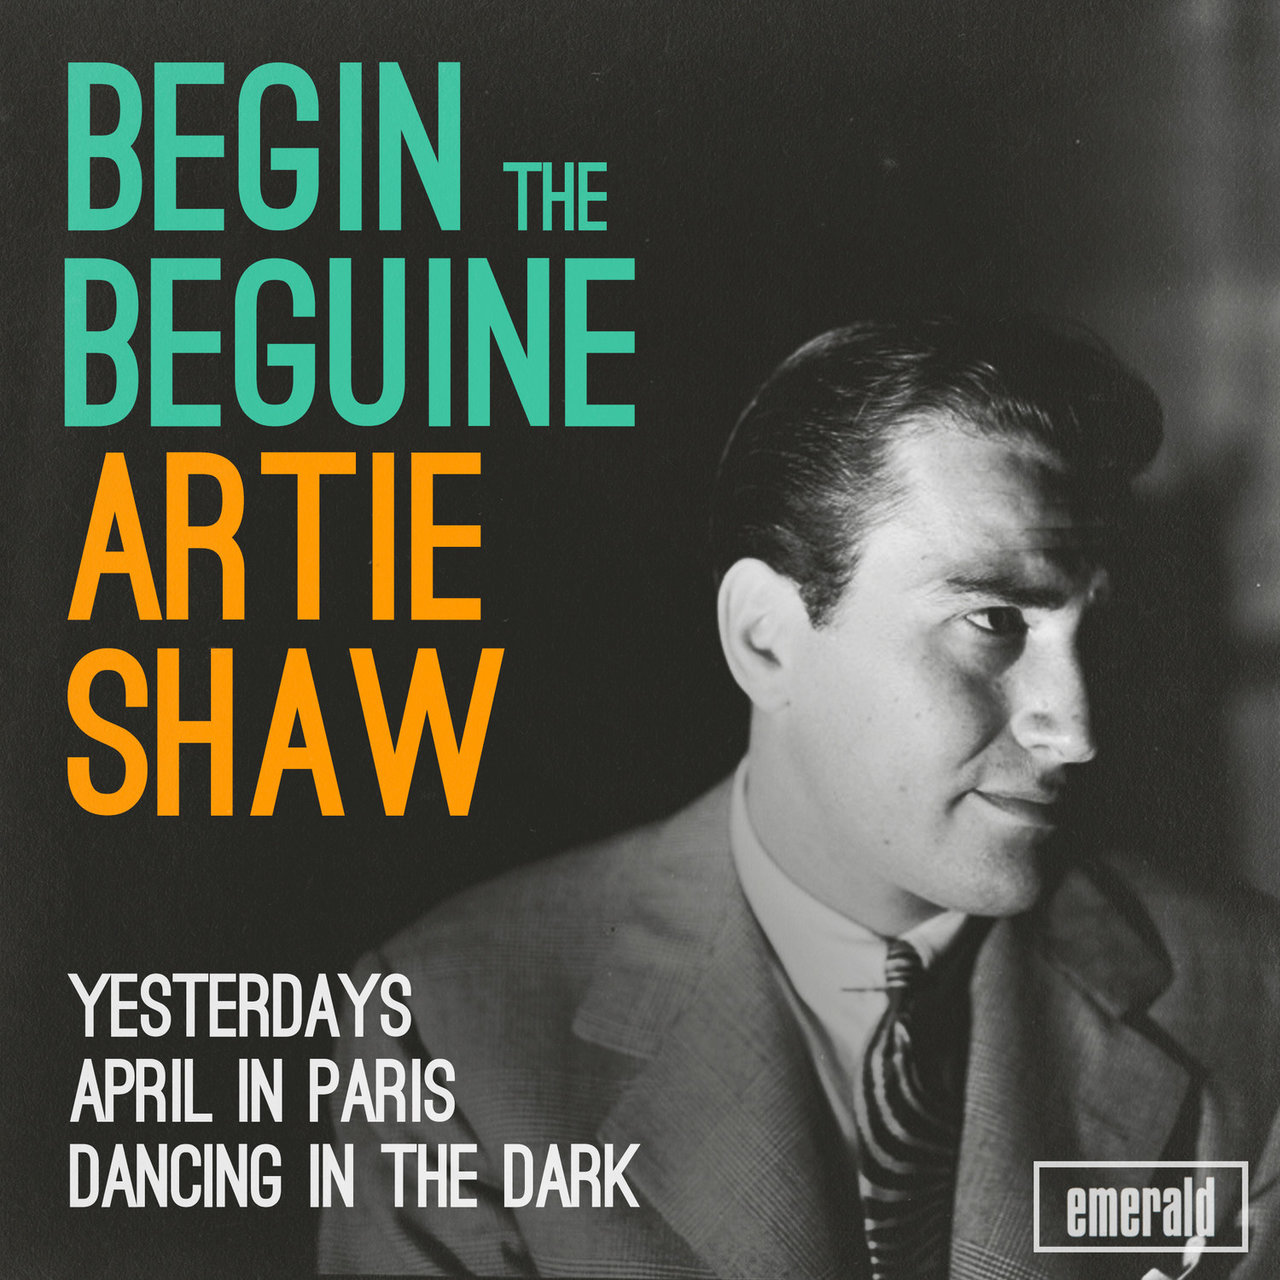 Artie Shaw Yesterdays Listen To Begin The Beguine By Artie Shaw On Tidal